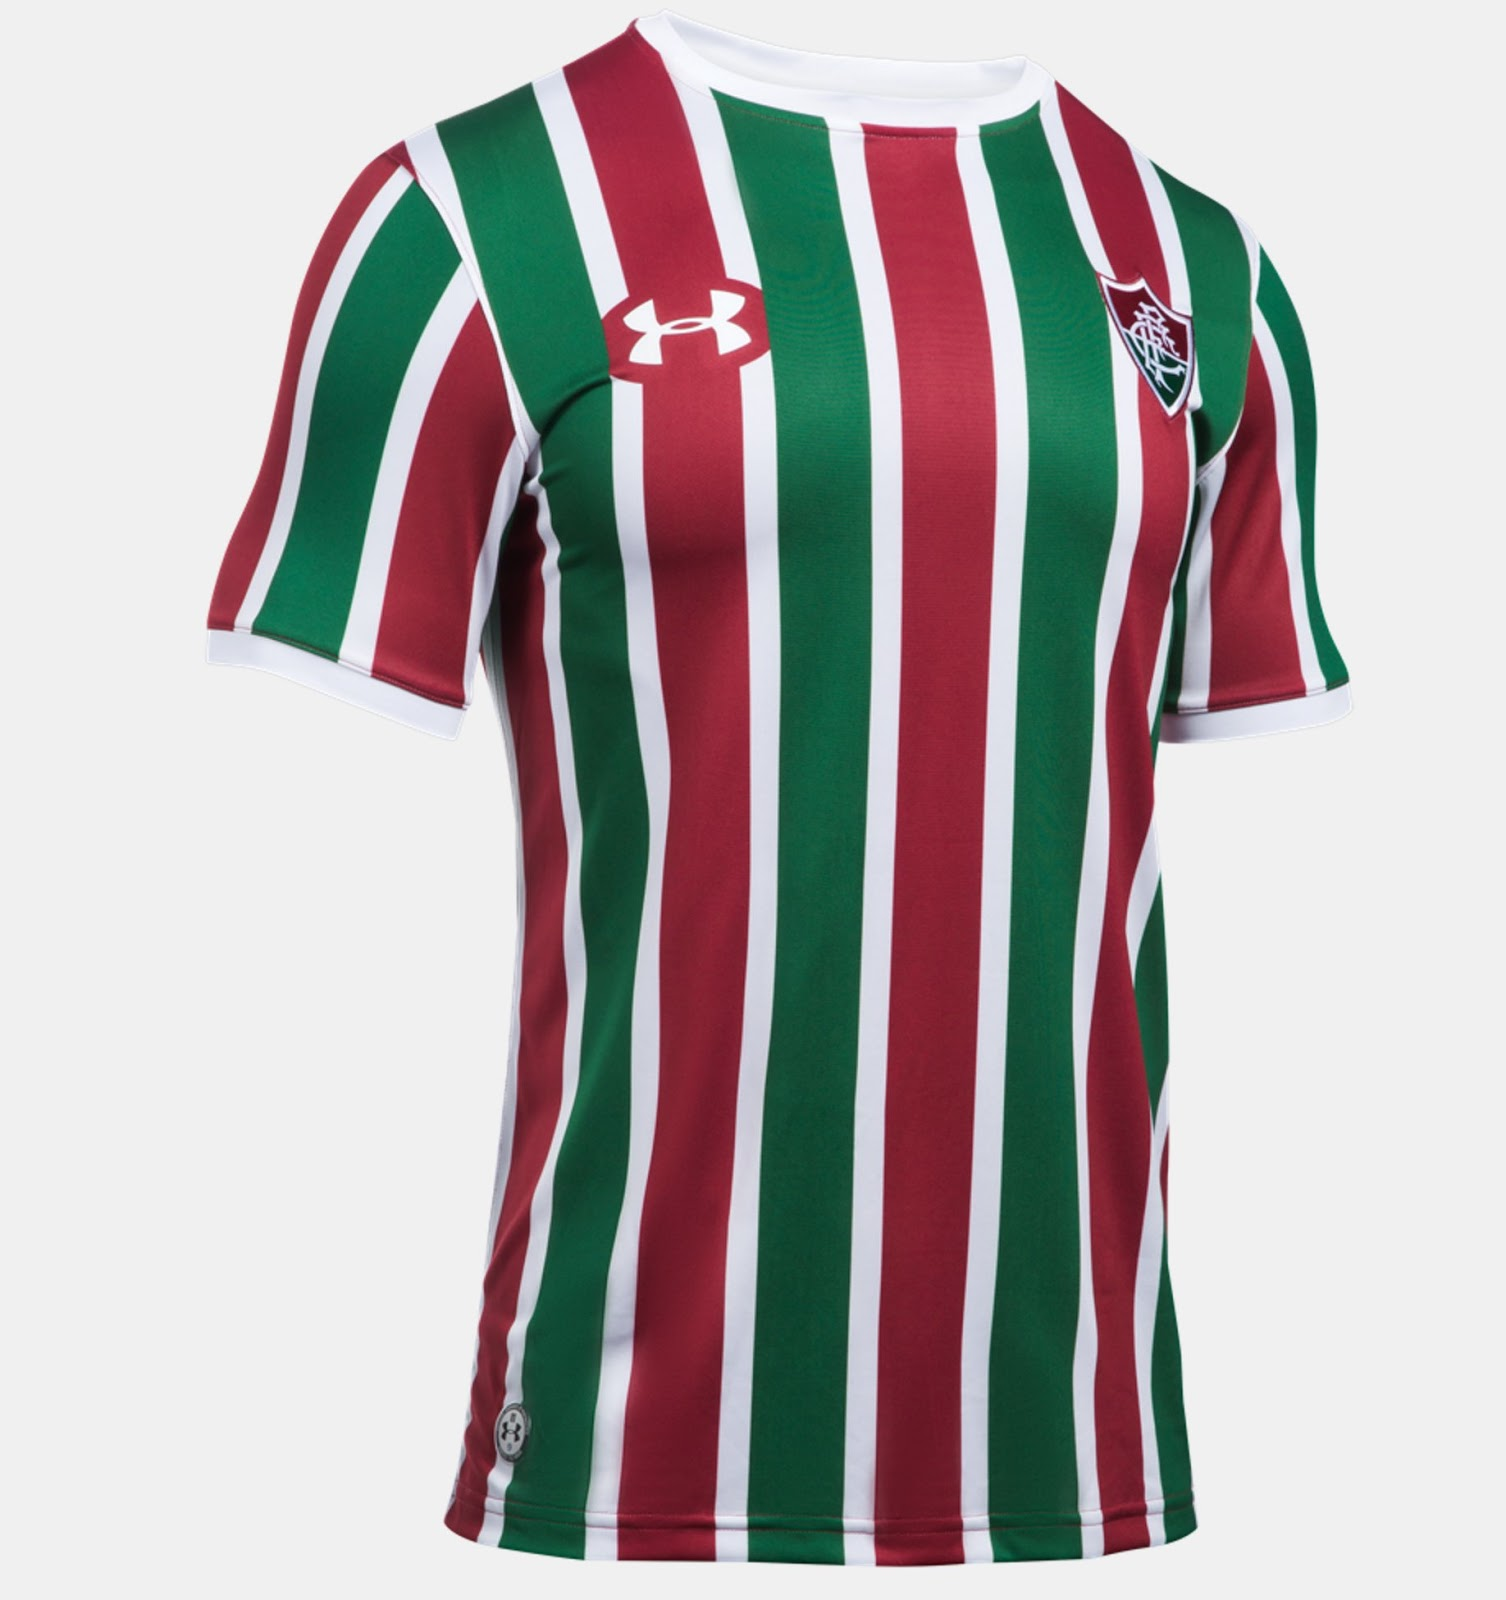 267b4332152 No More Dryworld Under Armour Fluminense 17-18 Home & Away Kits Released -  Footy Headlines (1506x1600) ...